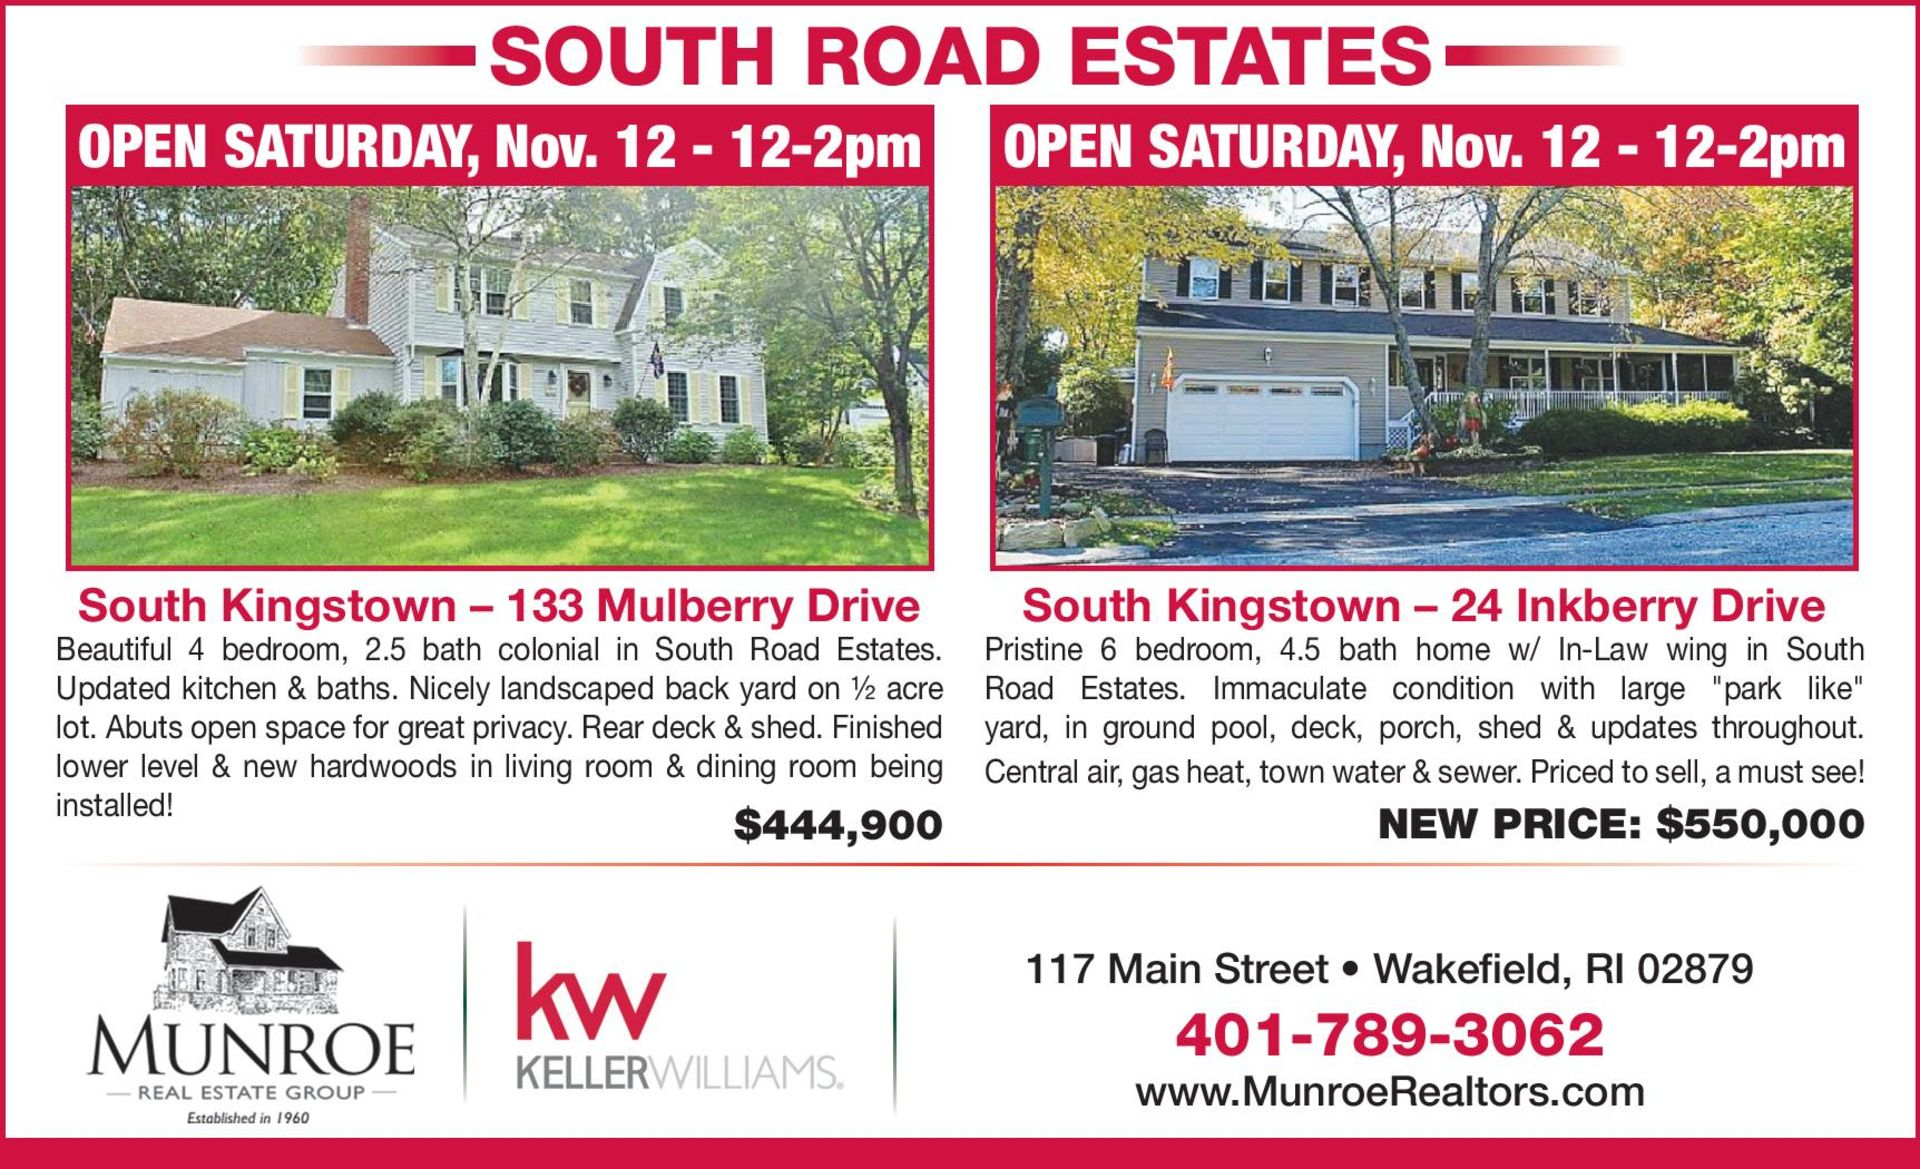 2 Homes Open This Saturday in South Road Estates!